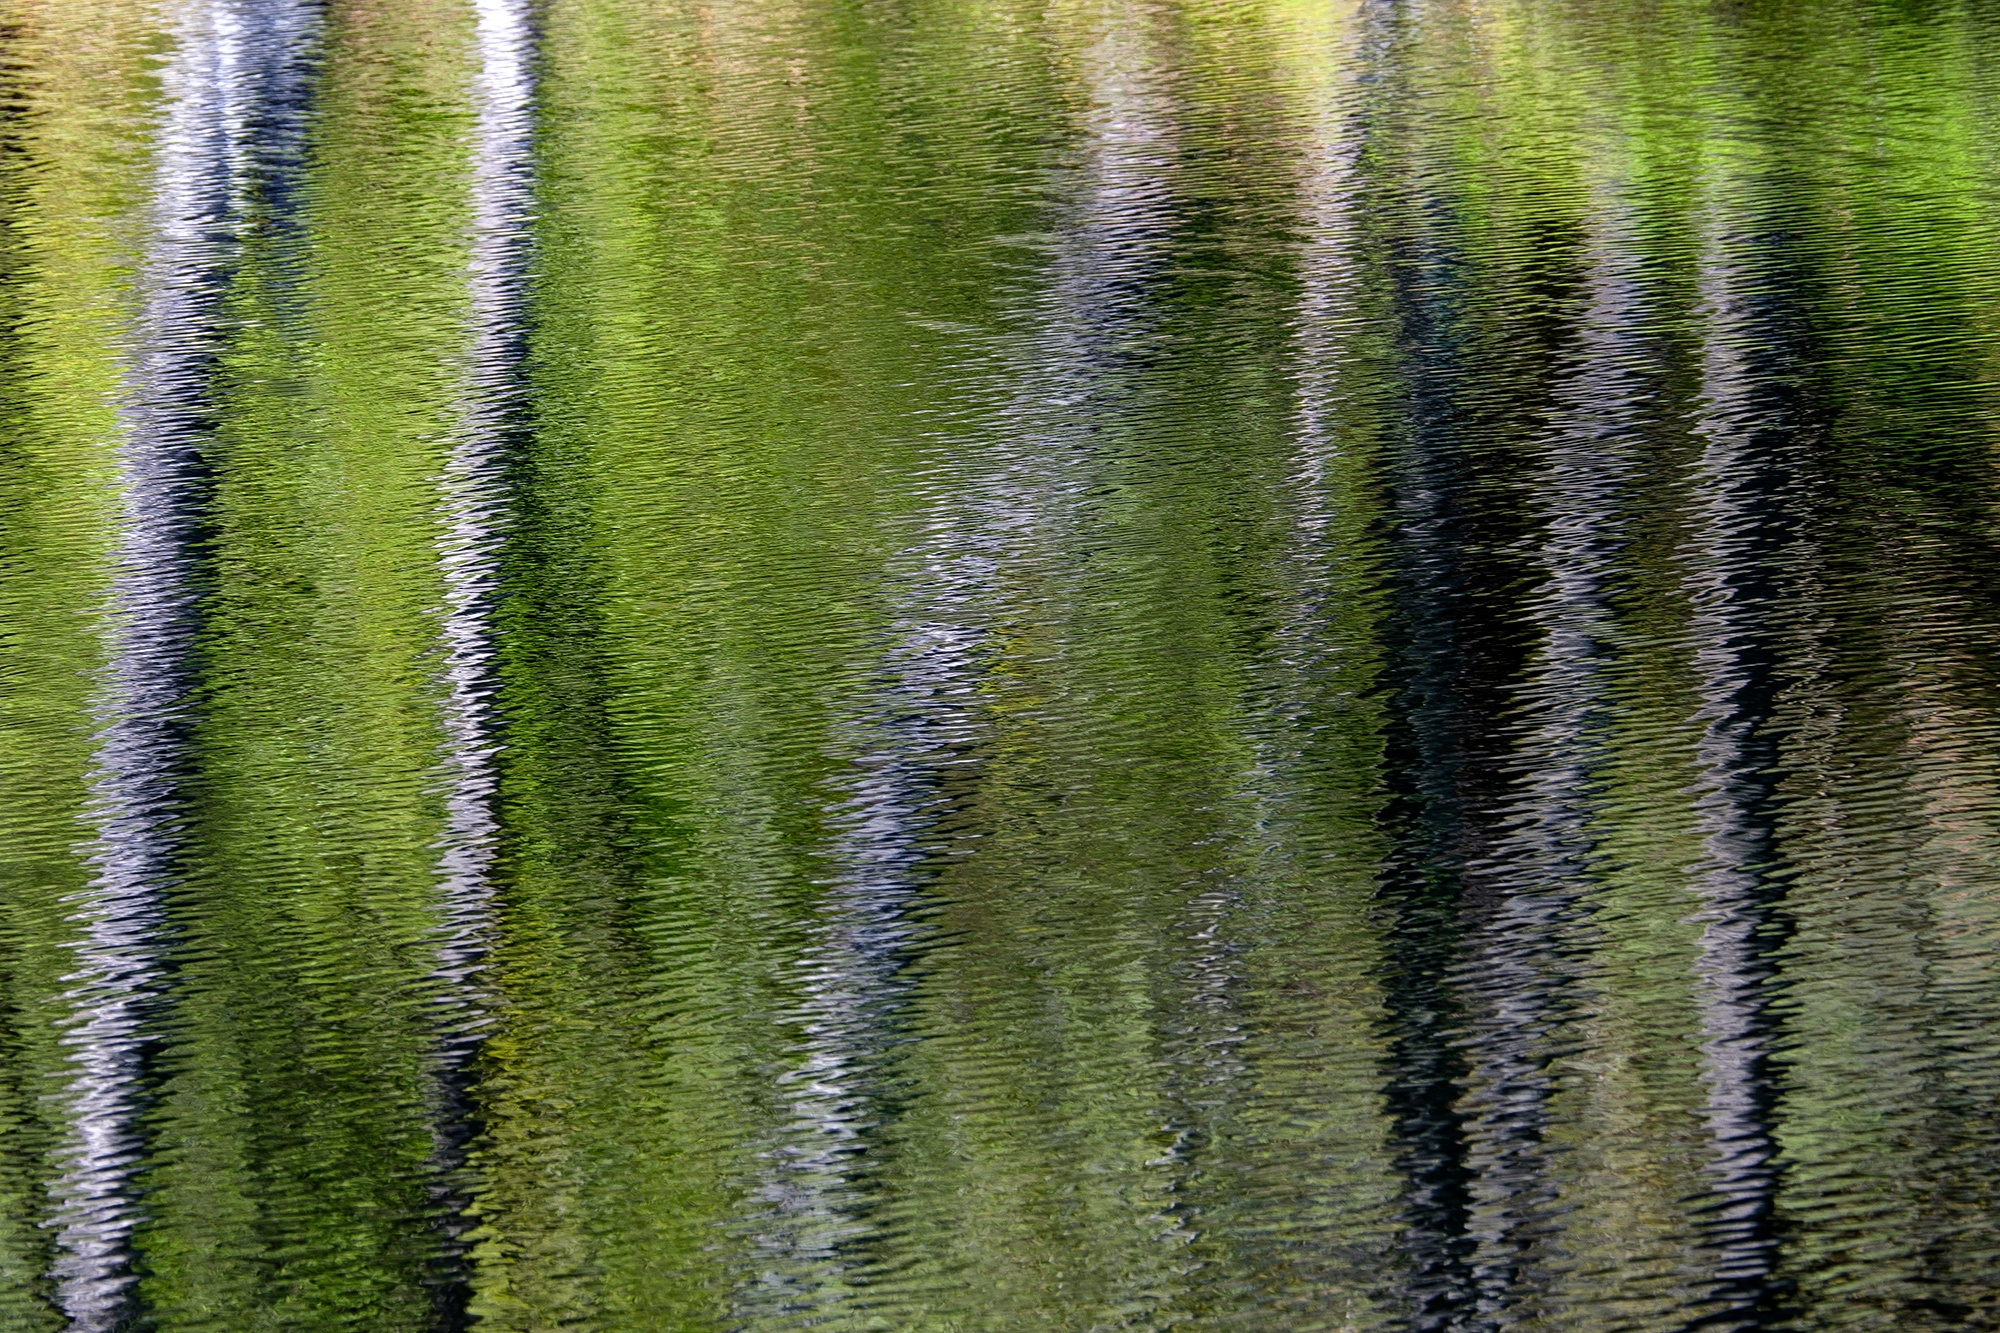 Birch Tree Refections, Loch Katrine, Trossachs, Scotland - XH1 + 50-140mm